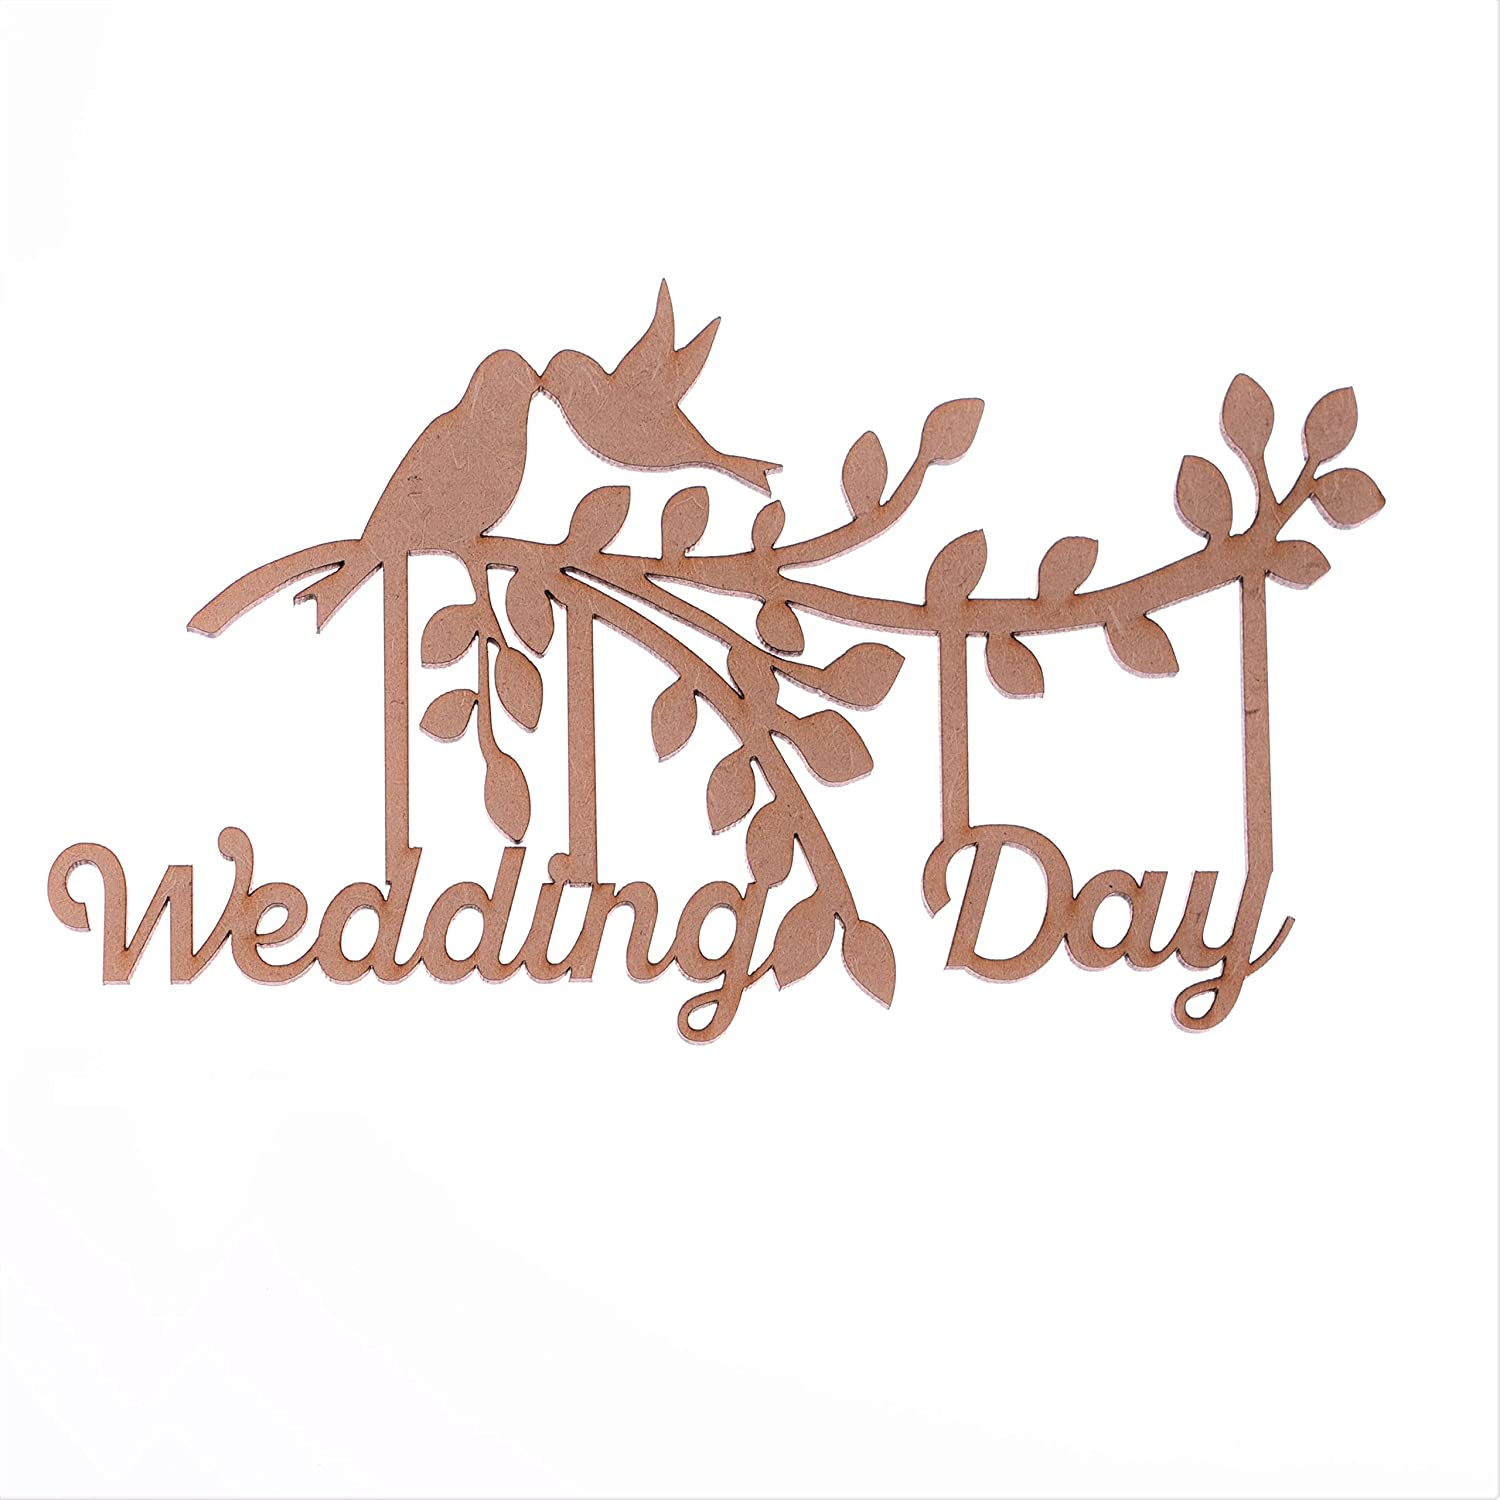 Ambrosia Crafts Wedding Day Branch, Wooden MDF Branch Shape - Wedding Day, Family Tree Branch, Wedding Day' Wedding Day'